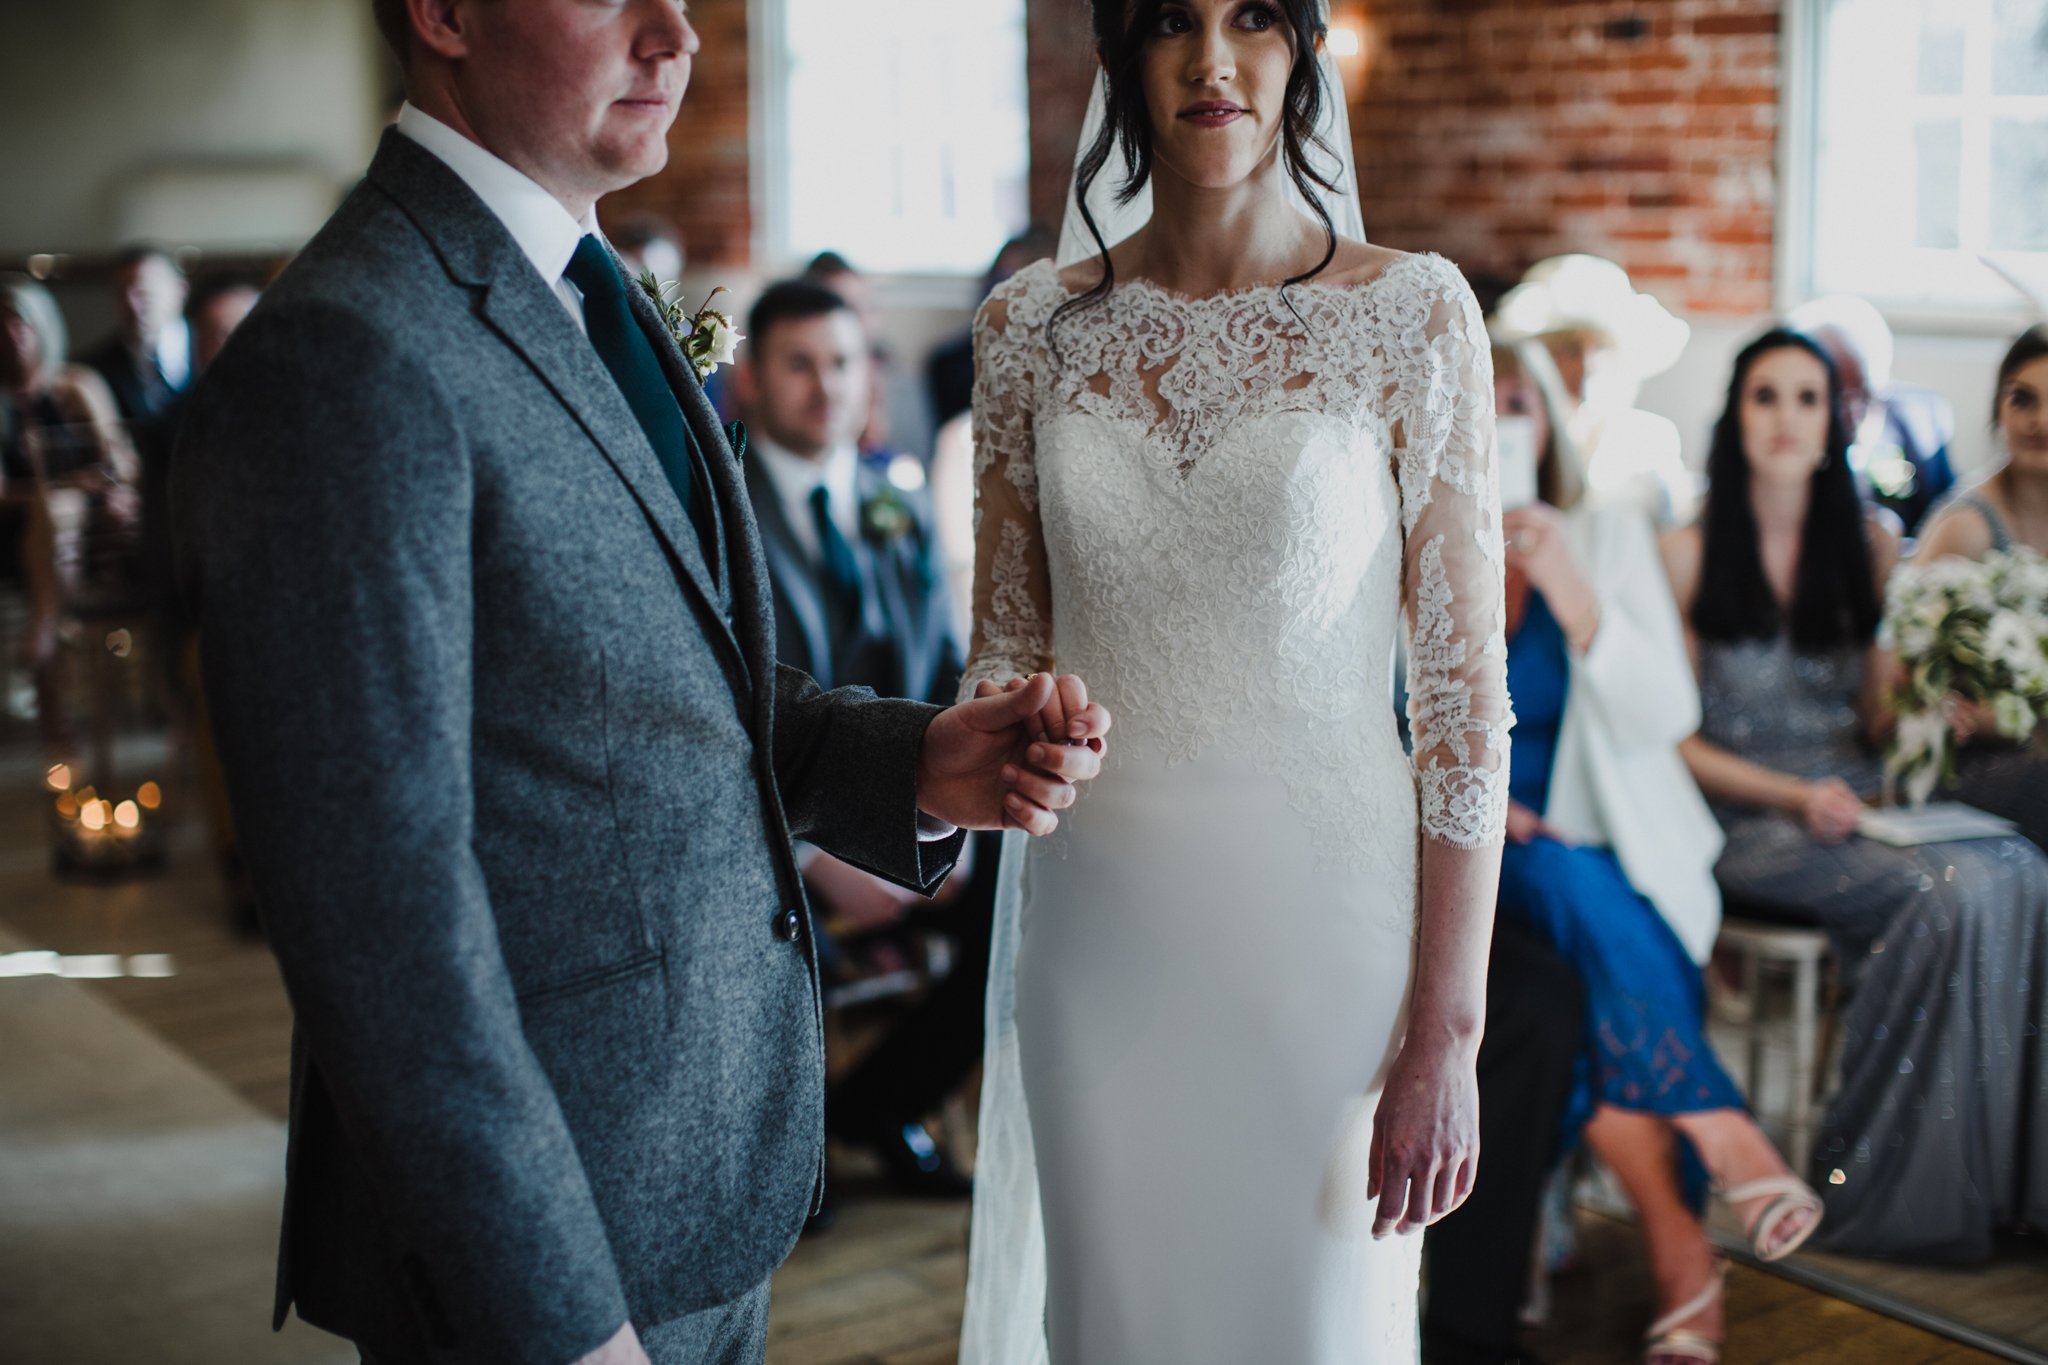 medium view of bride and groom holding hands